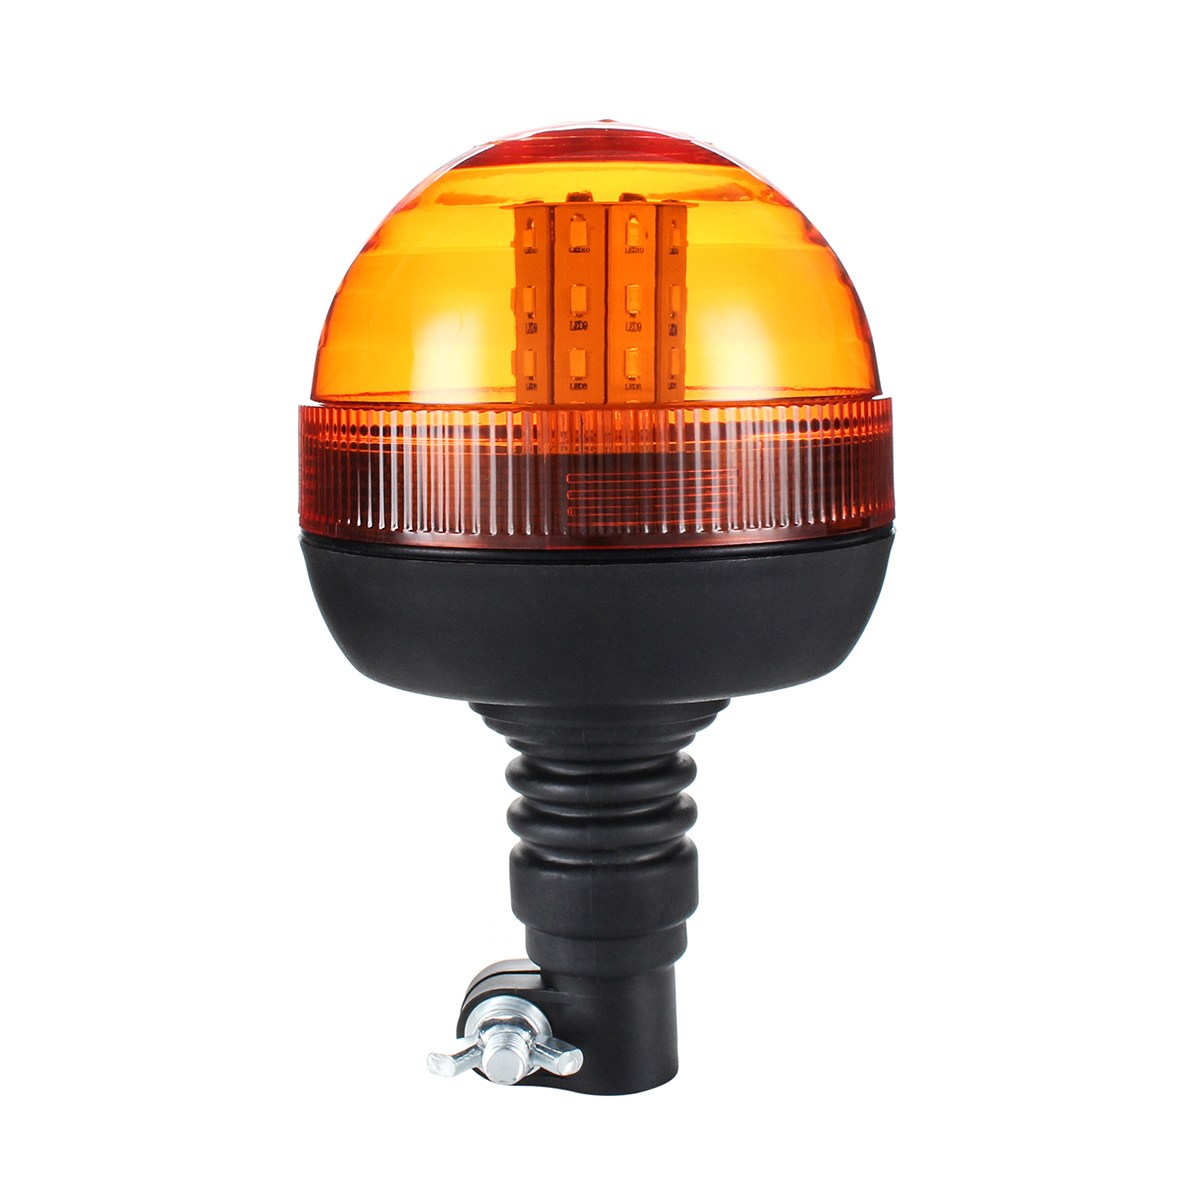 NEW LED Rotating Flashing Amber Beacon Flexible Tractor Warning Light 12V-24V Roadway Safety safurance led rotating flashing amber beacon flexible tractor warning light 12v 24v roadway safety